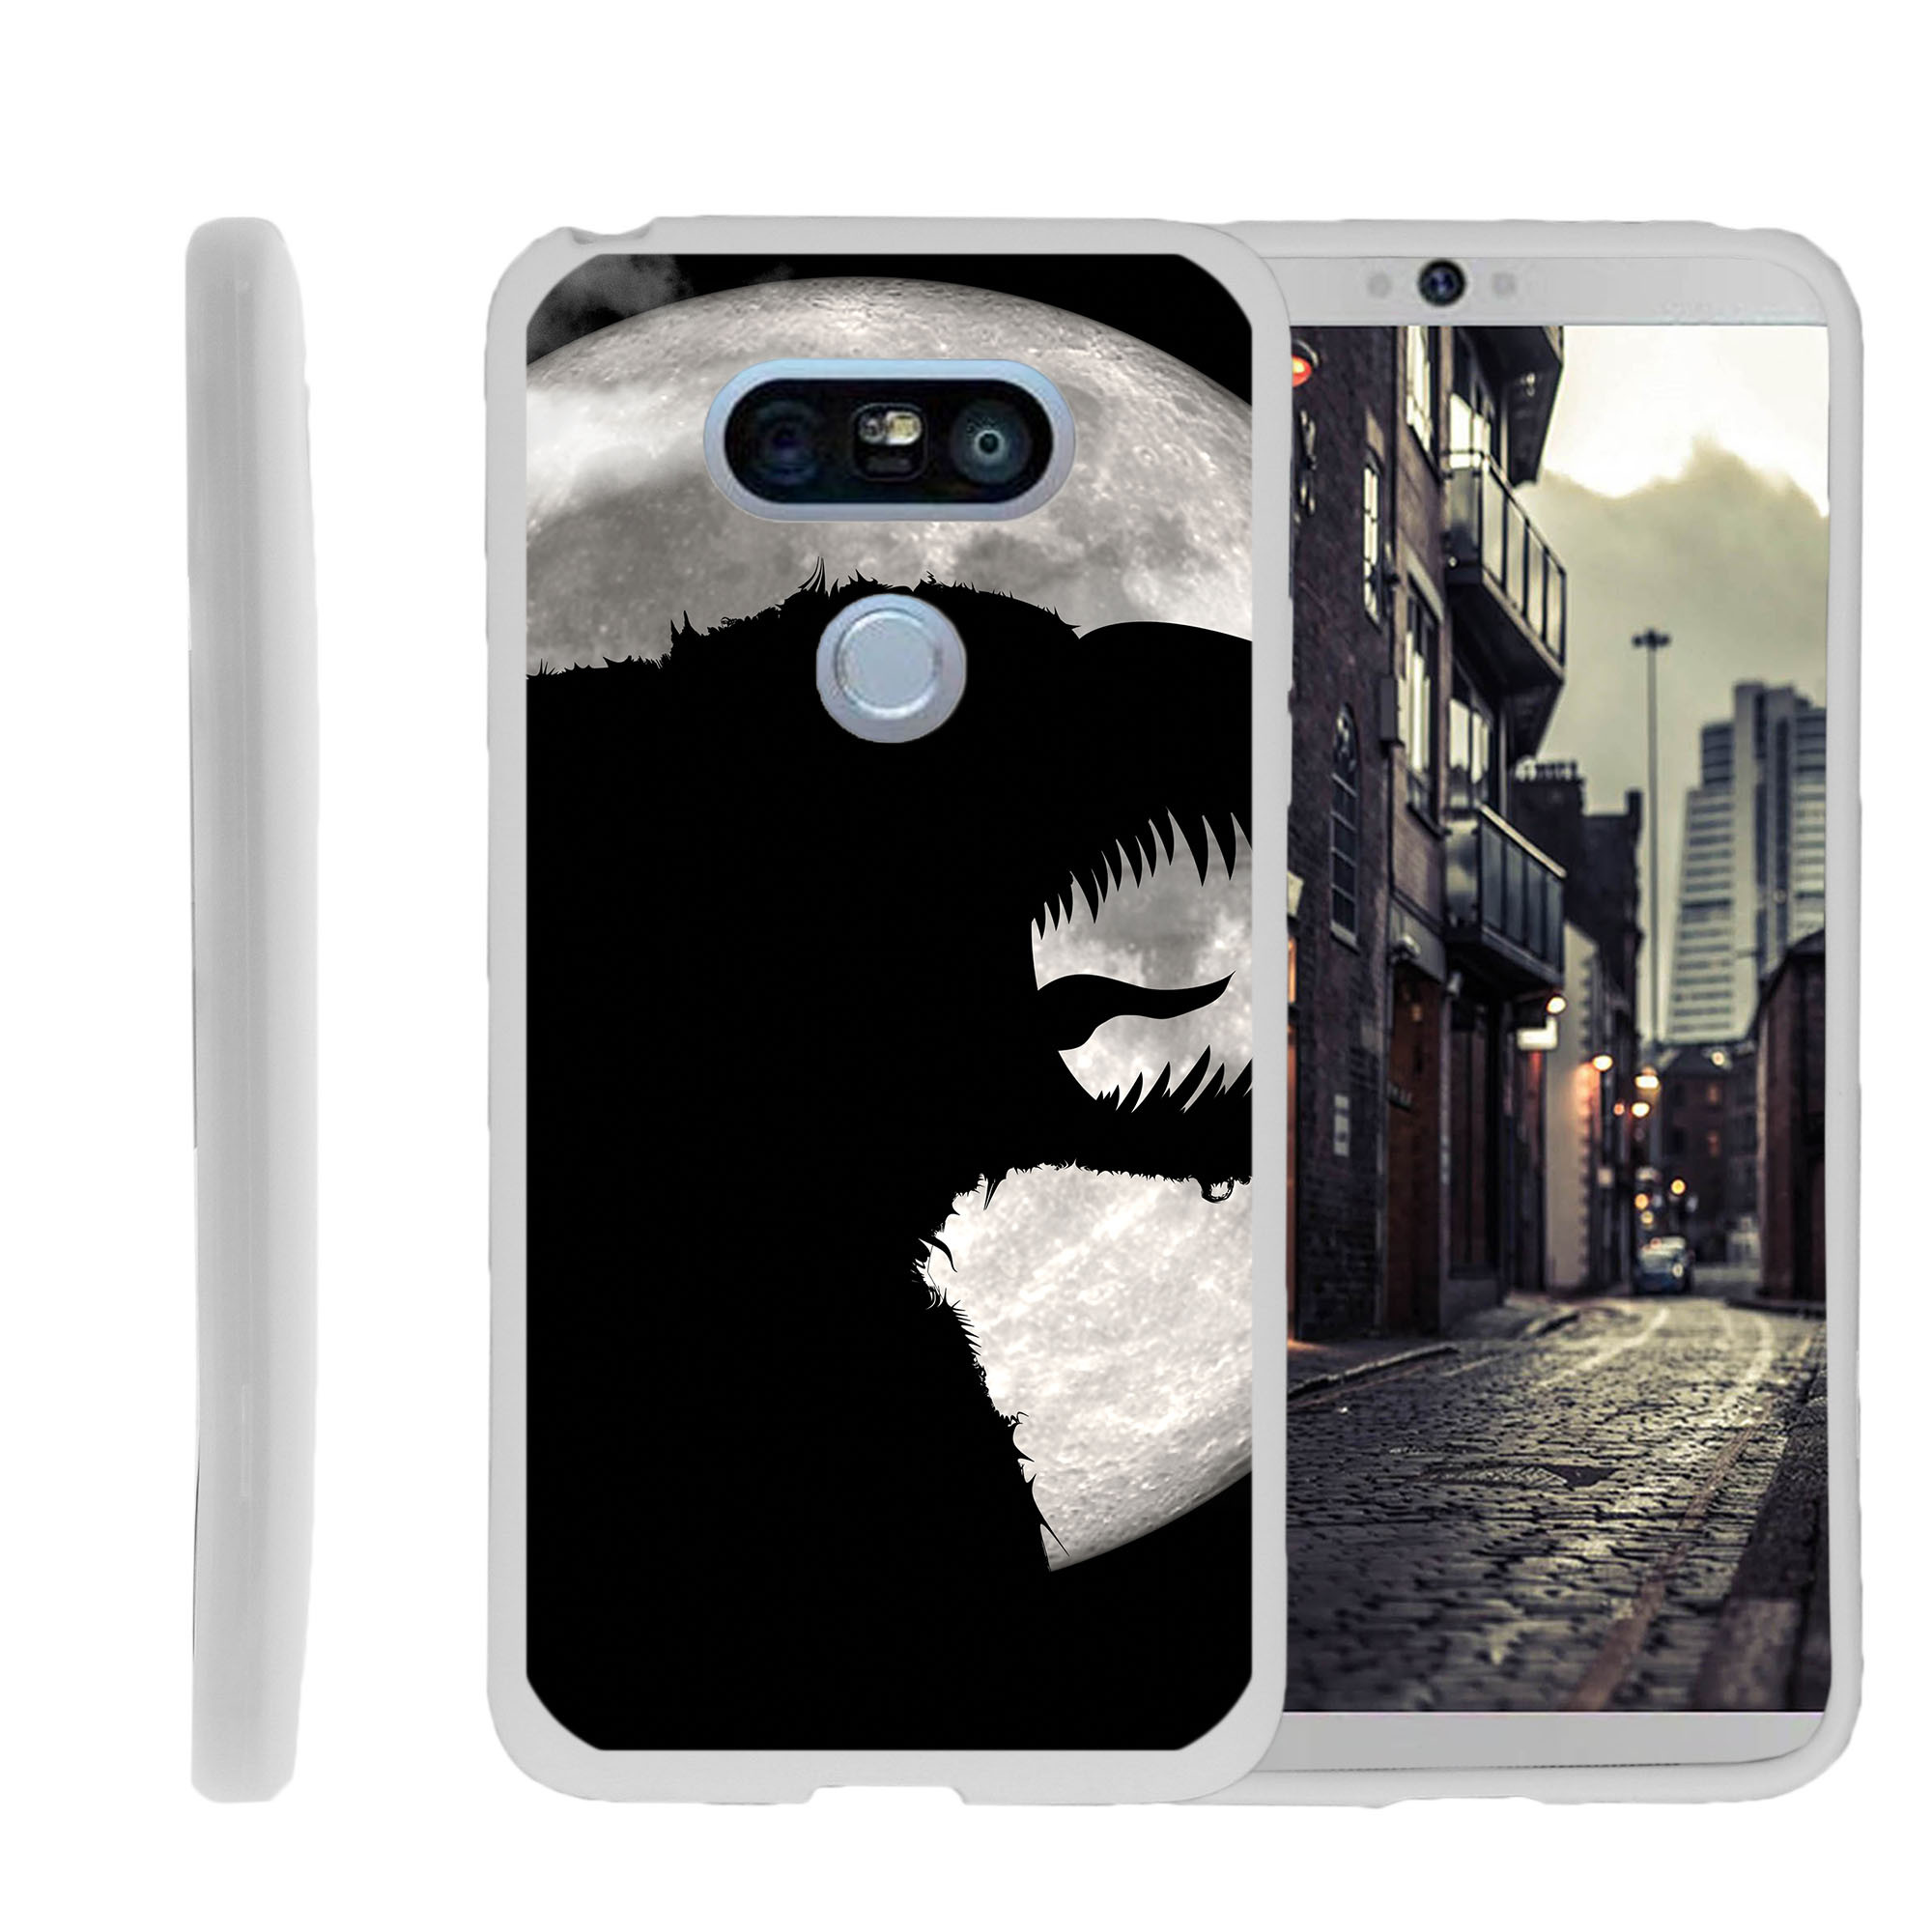 LG G5, H850, H830, H820, US992, G5 SE H845, Flexible Case [FLEX FORCE] Slim Durable TPU Sleek Bumper with Unique Designs - Scary Dark Monster